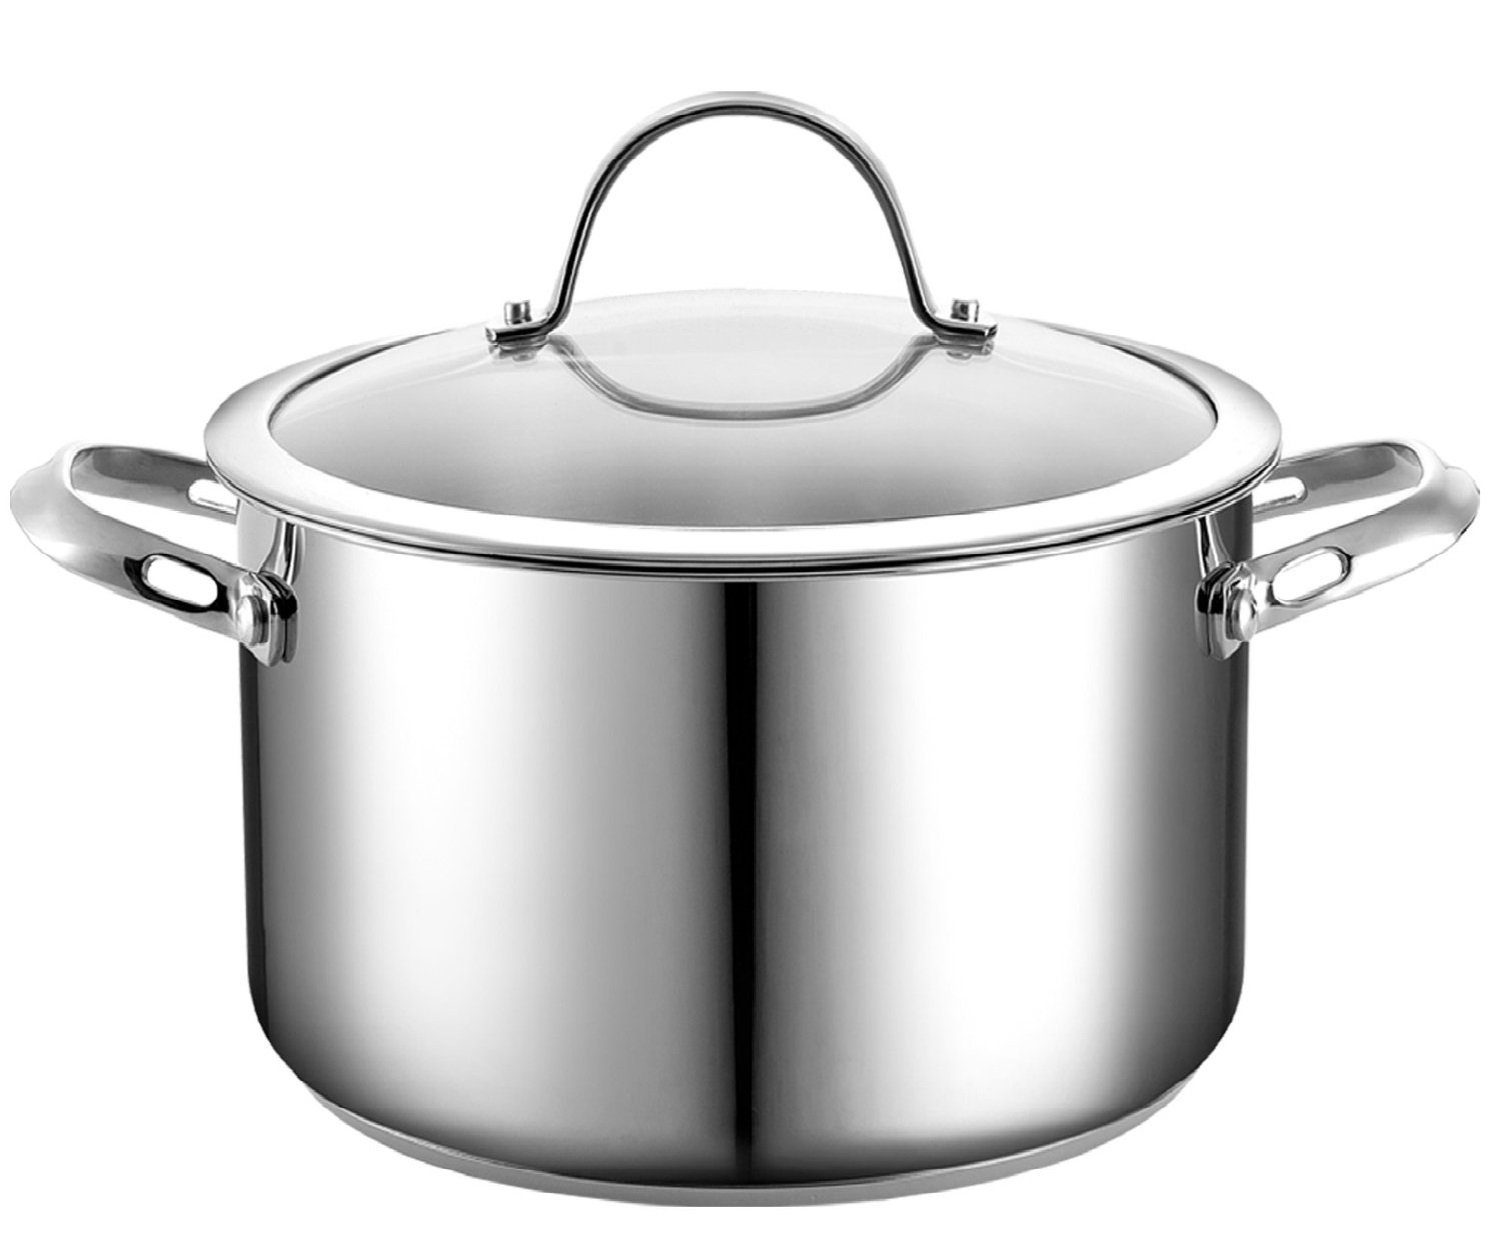 Cooks Standard Stainless Steel Stockpot with Cover, 6-Quart - Stainless Steel Pot